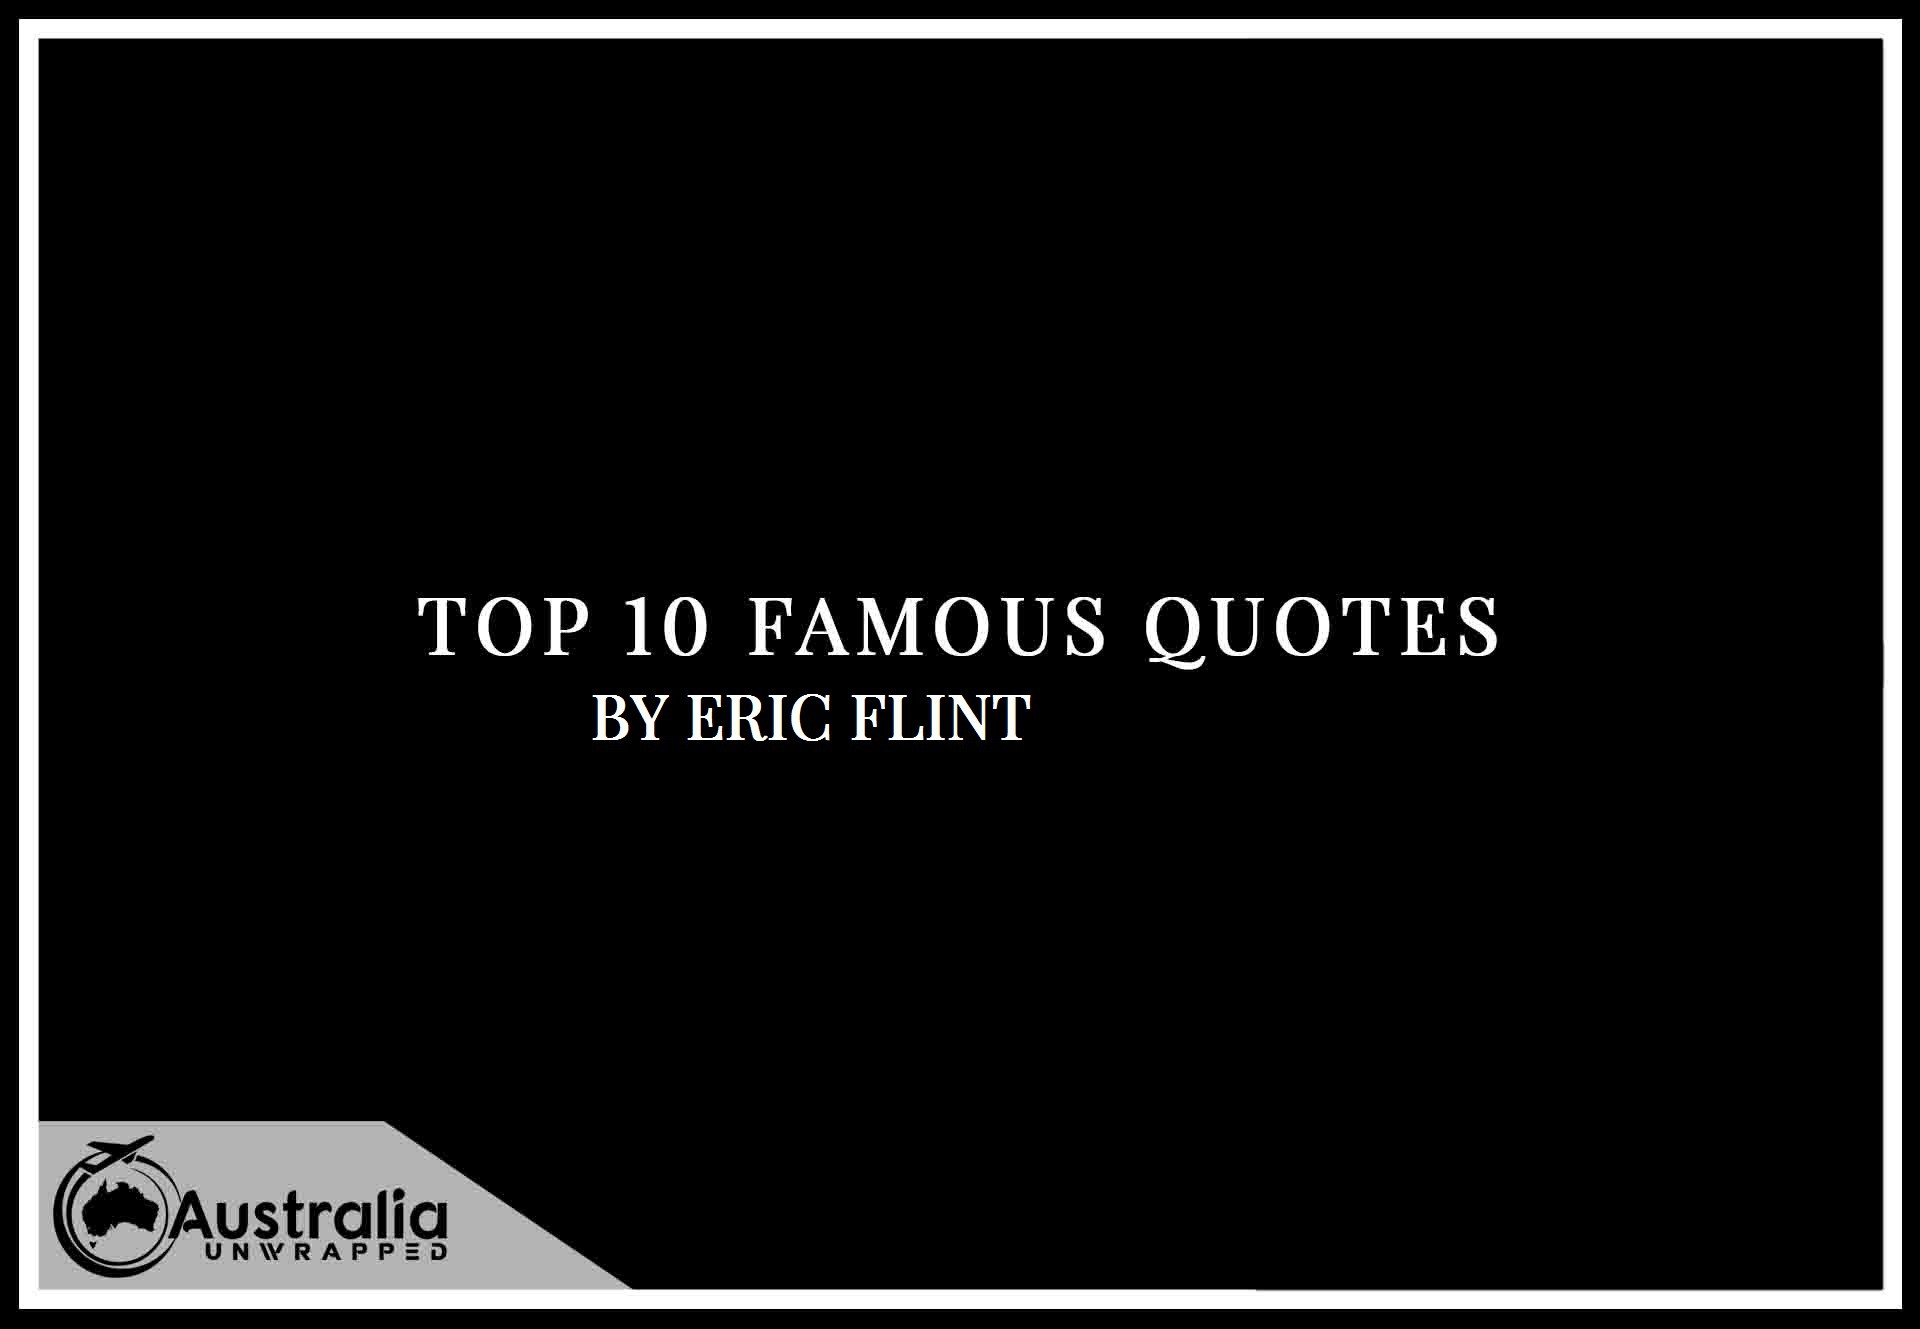 Eric Flint's Top 10 Popular and Famous Quotes